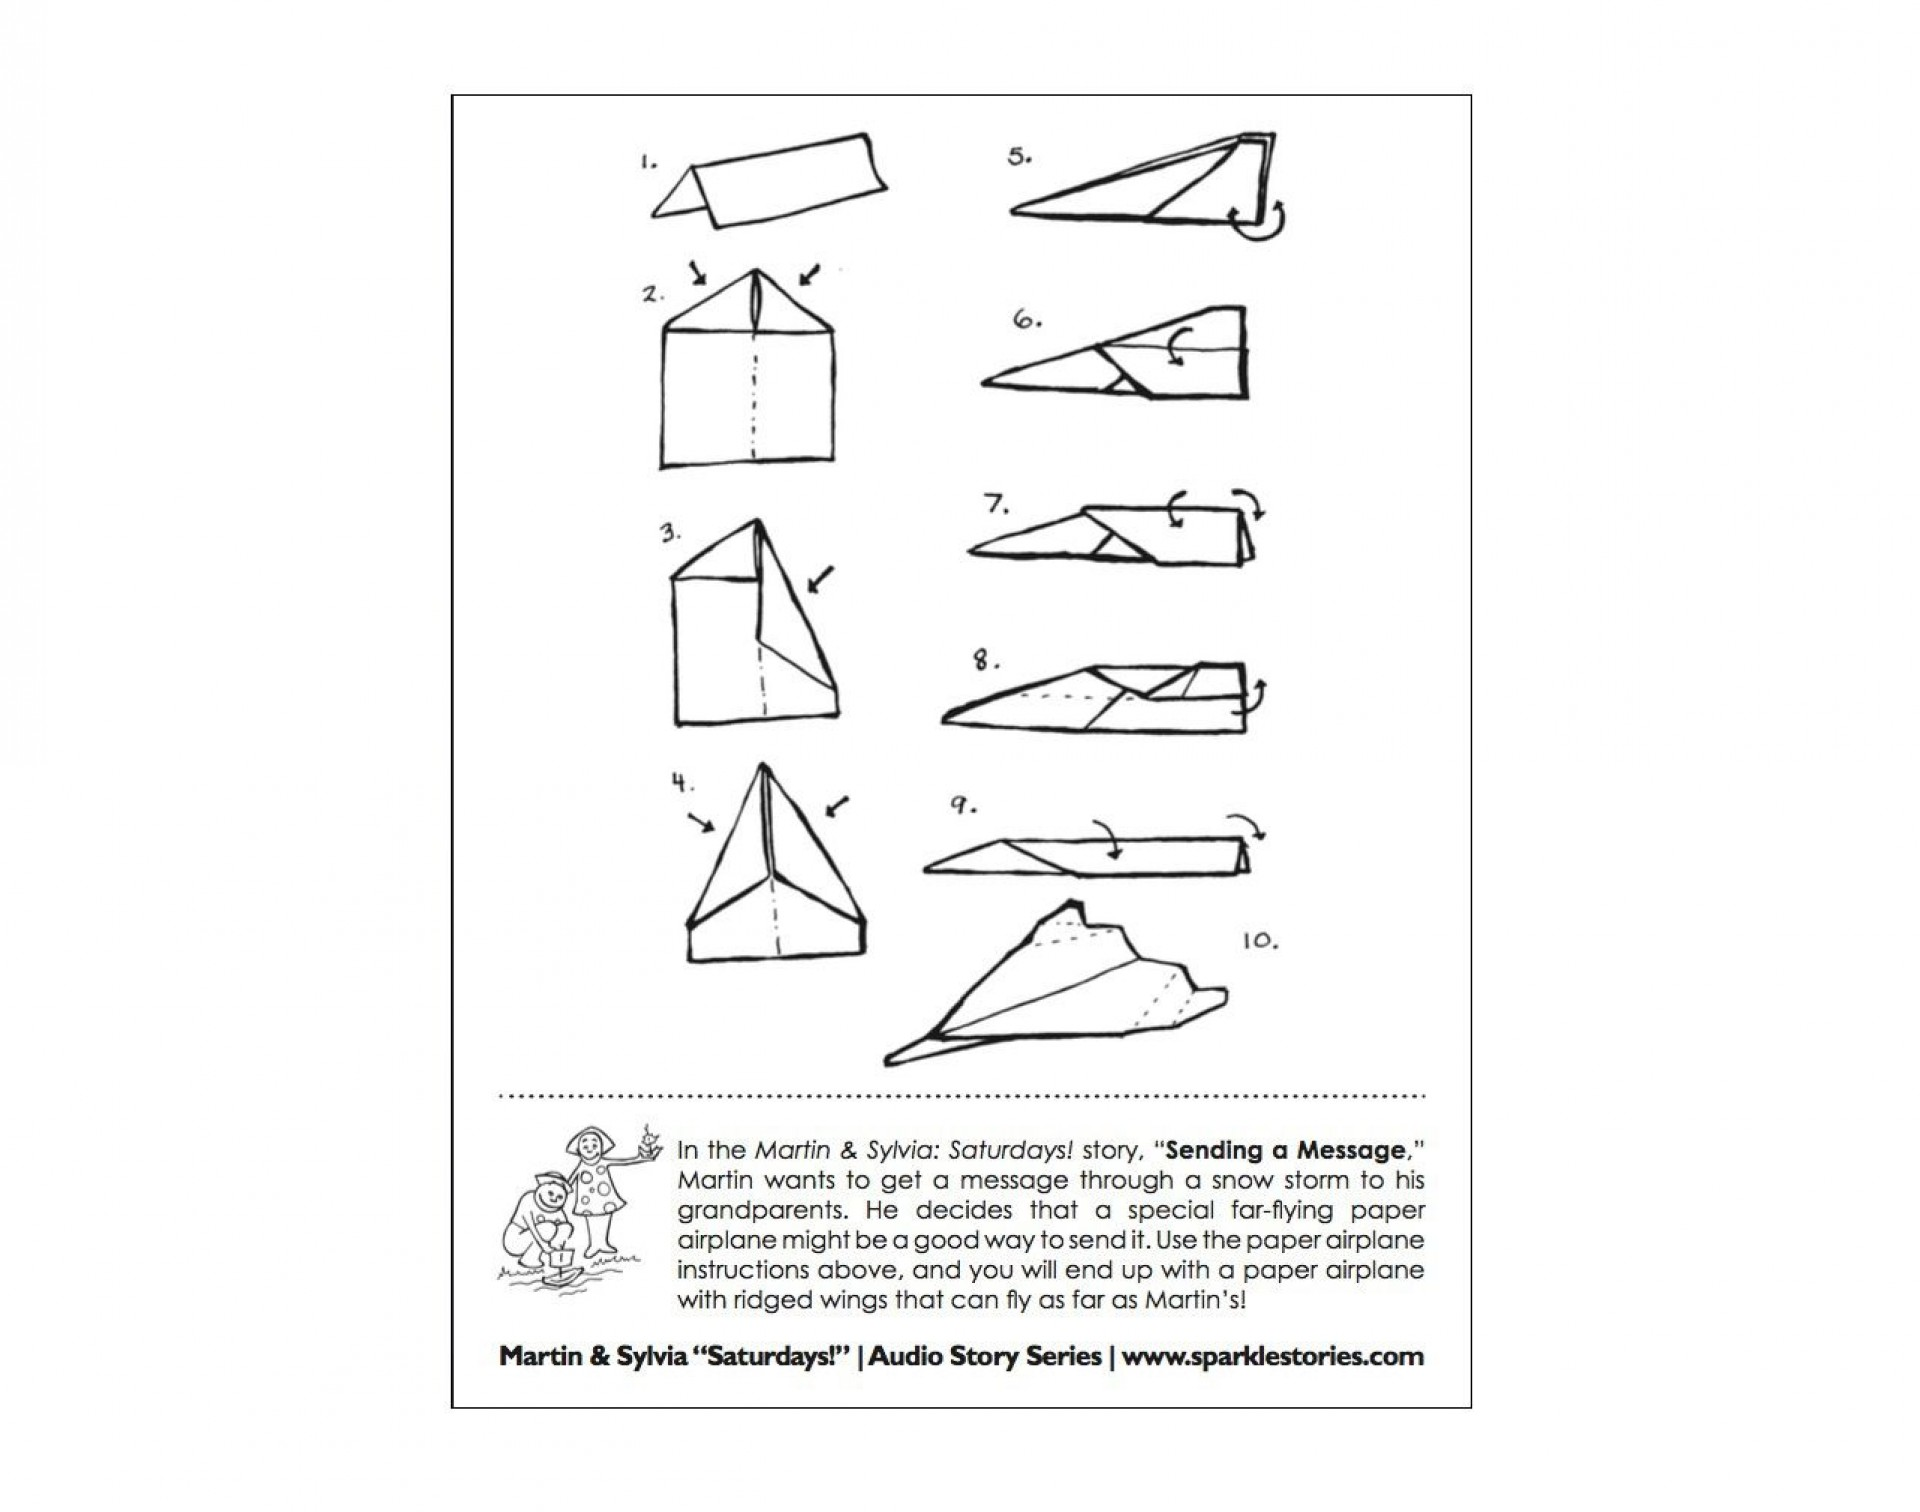 009 Magnificent Printable Paper Airplane Instruction Photo  Simple Free Folding1920